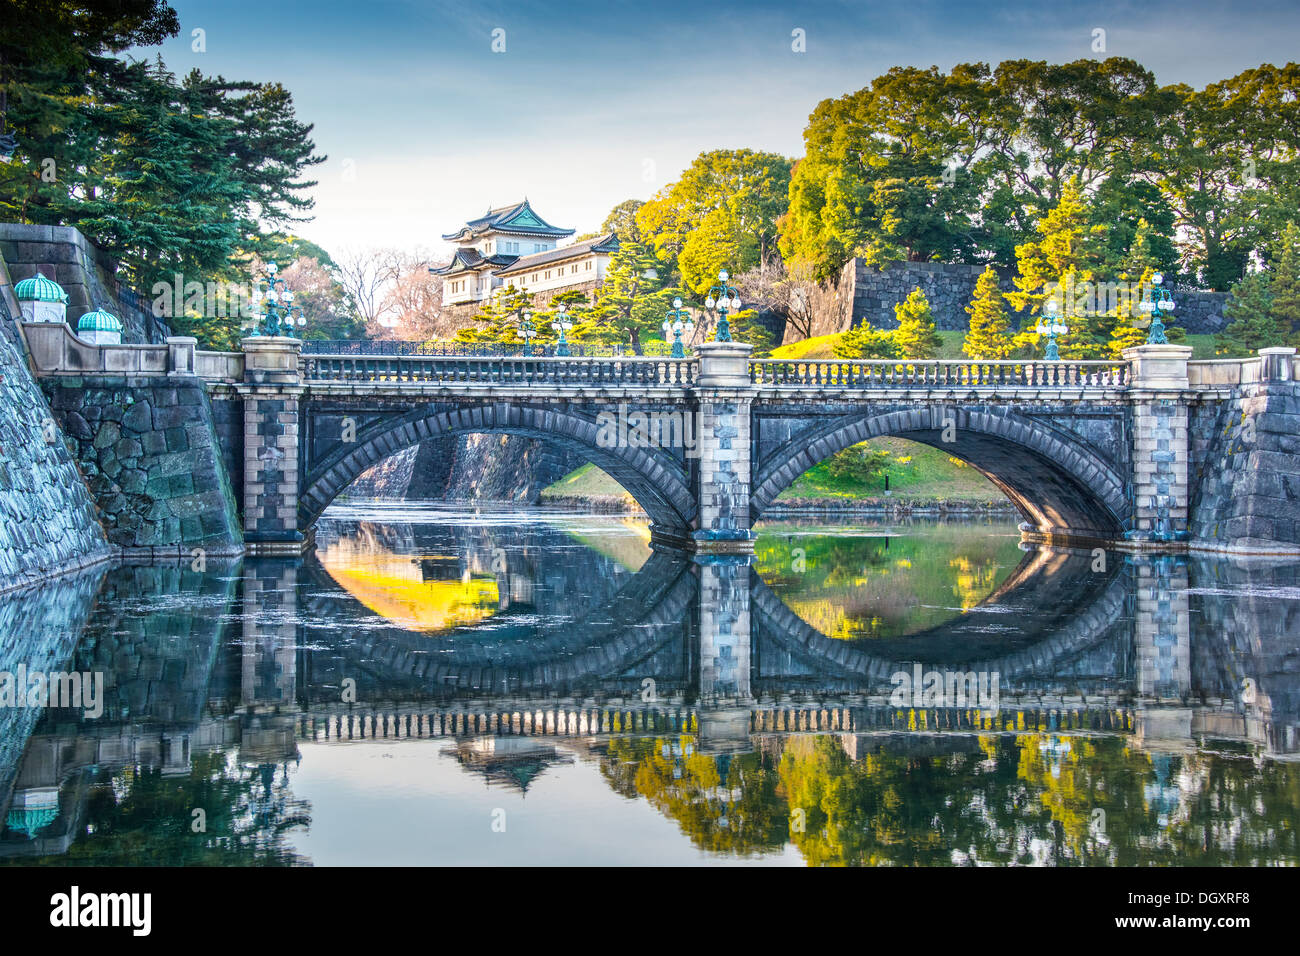 Tokyo Imperial Palace of Japan. - Stock Image